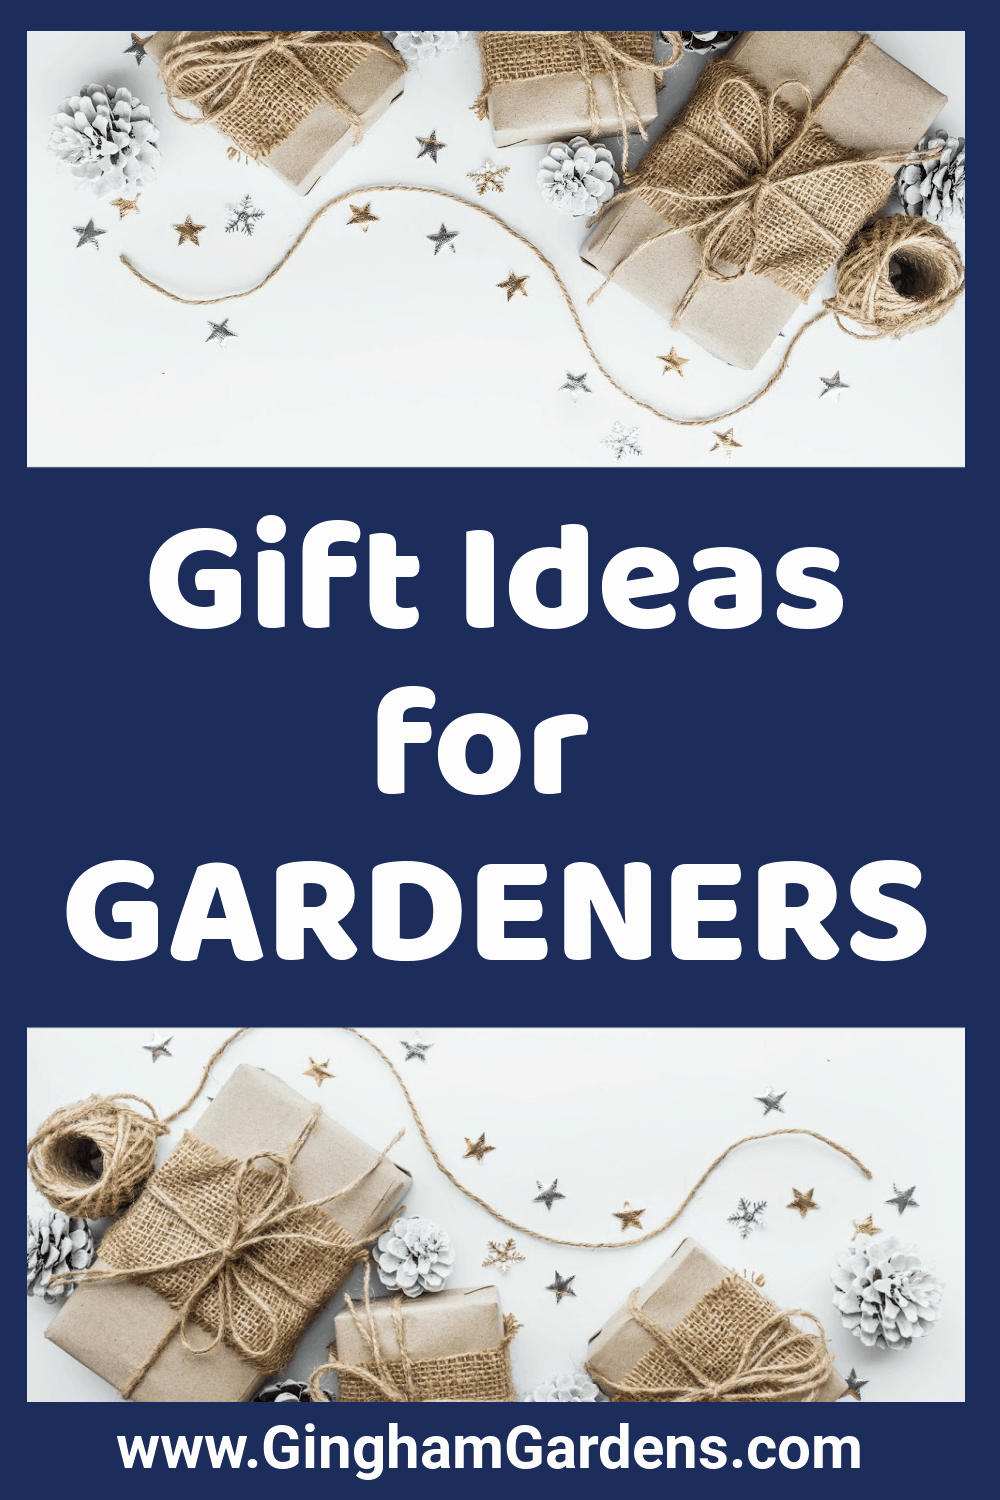 Images of Gifts with Text Overlay - Gift Ideas for Gardeners